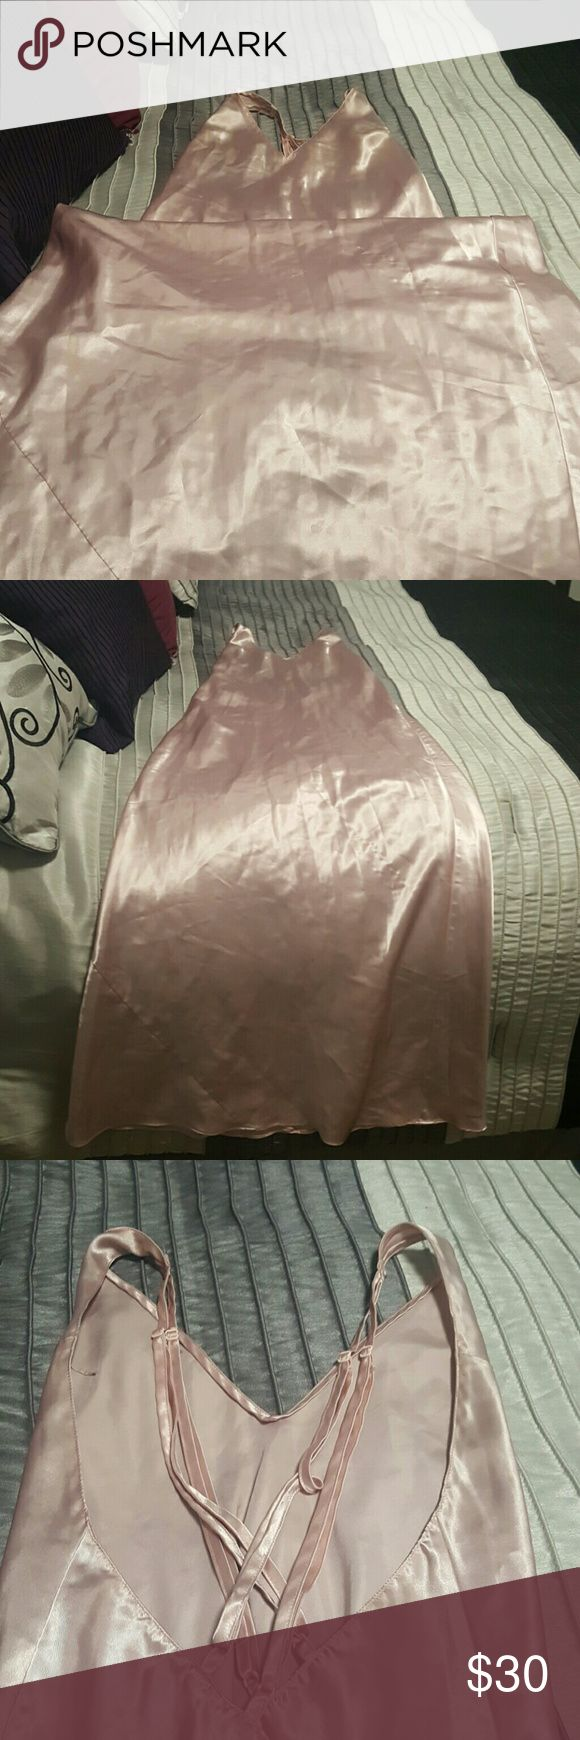 Frederick's of Hollywood pink silk nightgown Frederick's of Hollywood pink silk nightgown with open criss cross back detail. Comes down to the floor!!!! Will accept reasonable offers Frederick's of Hollywood Intimates & Sleepwear Chemises & Slips